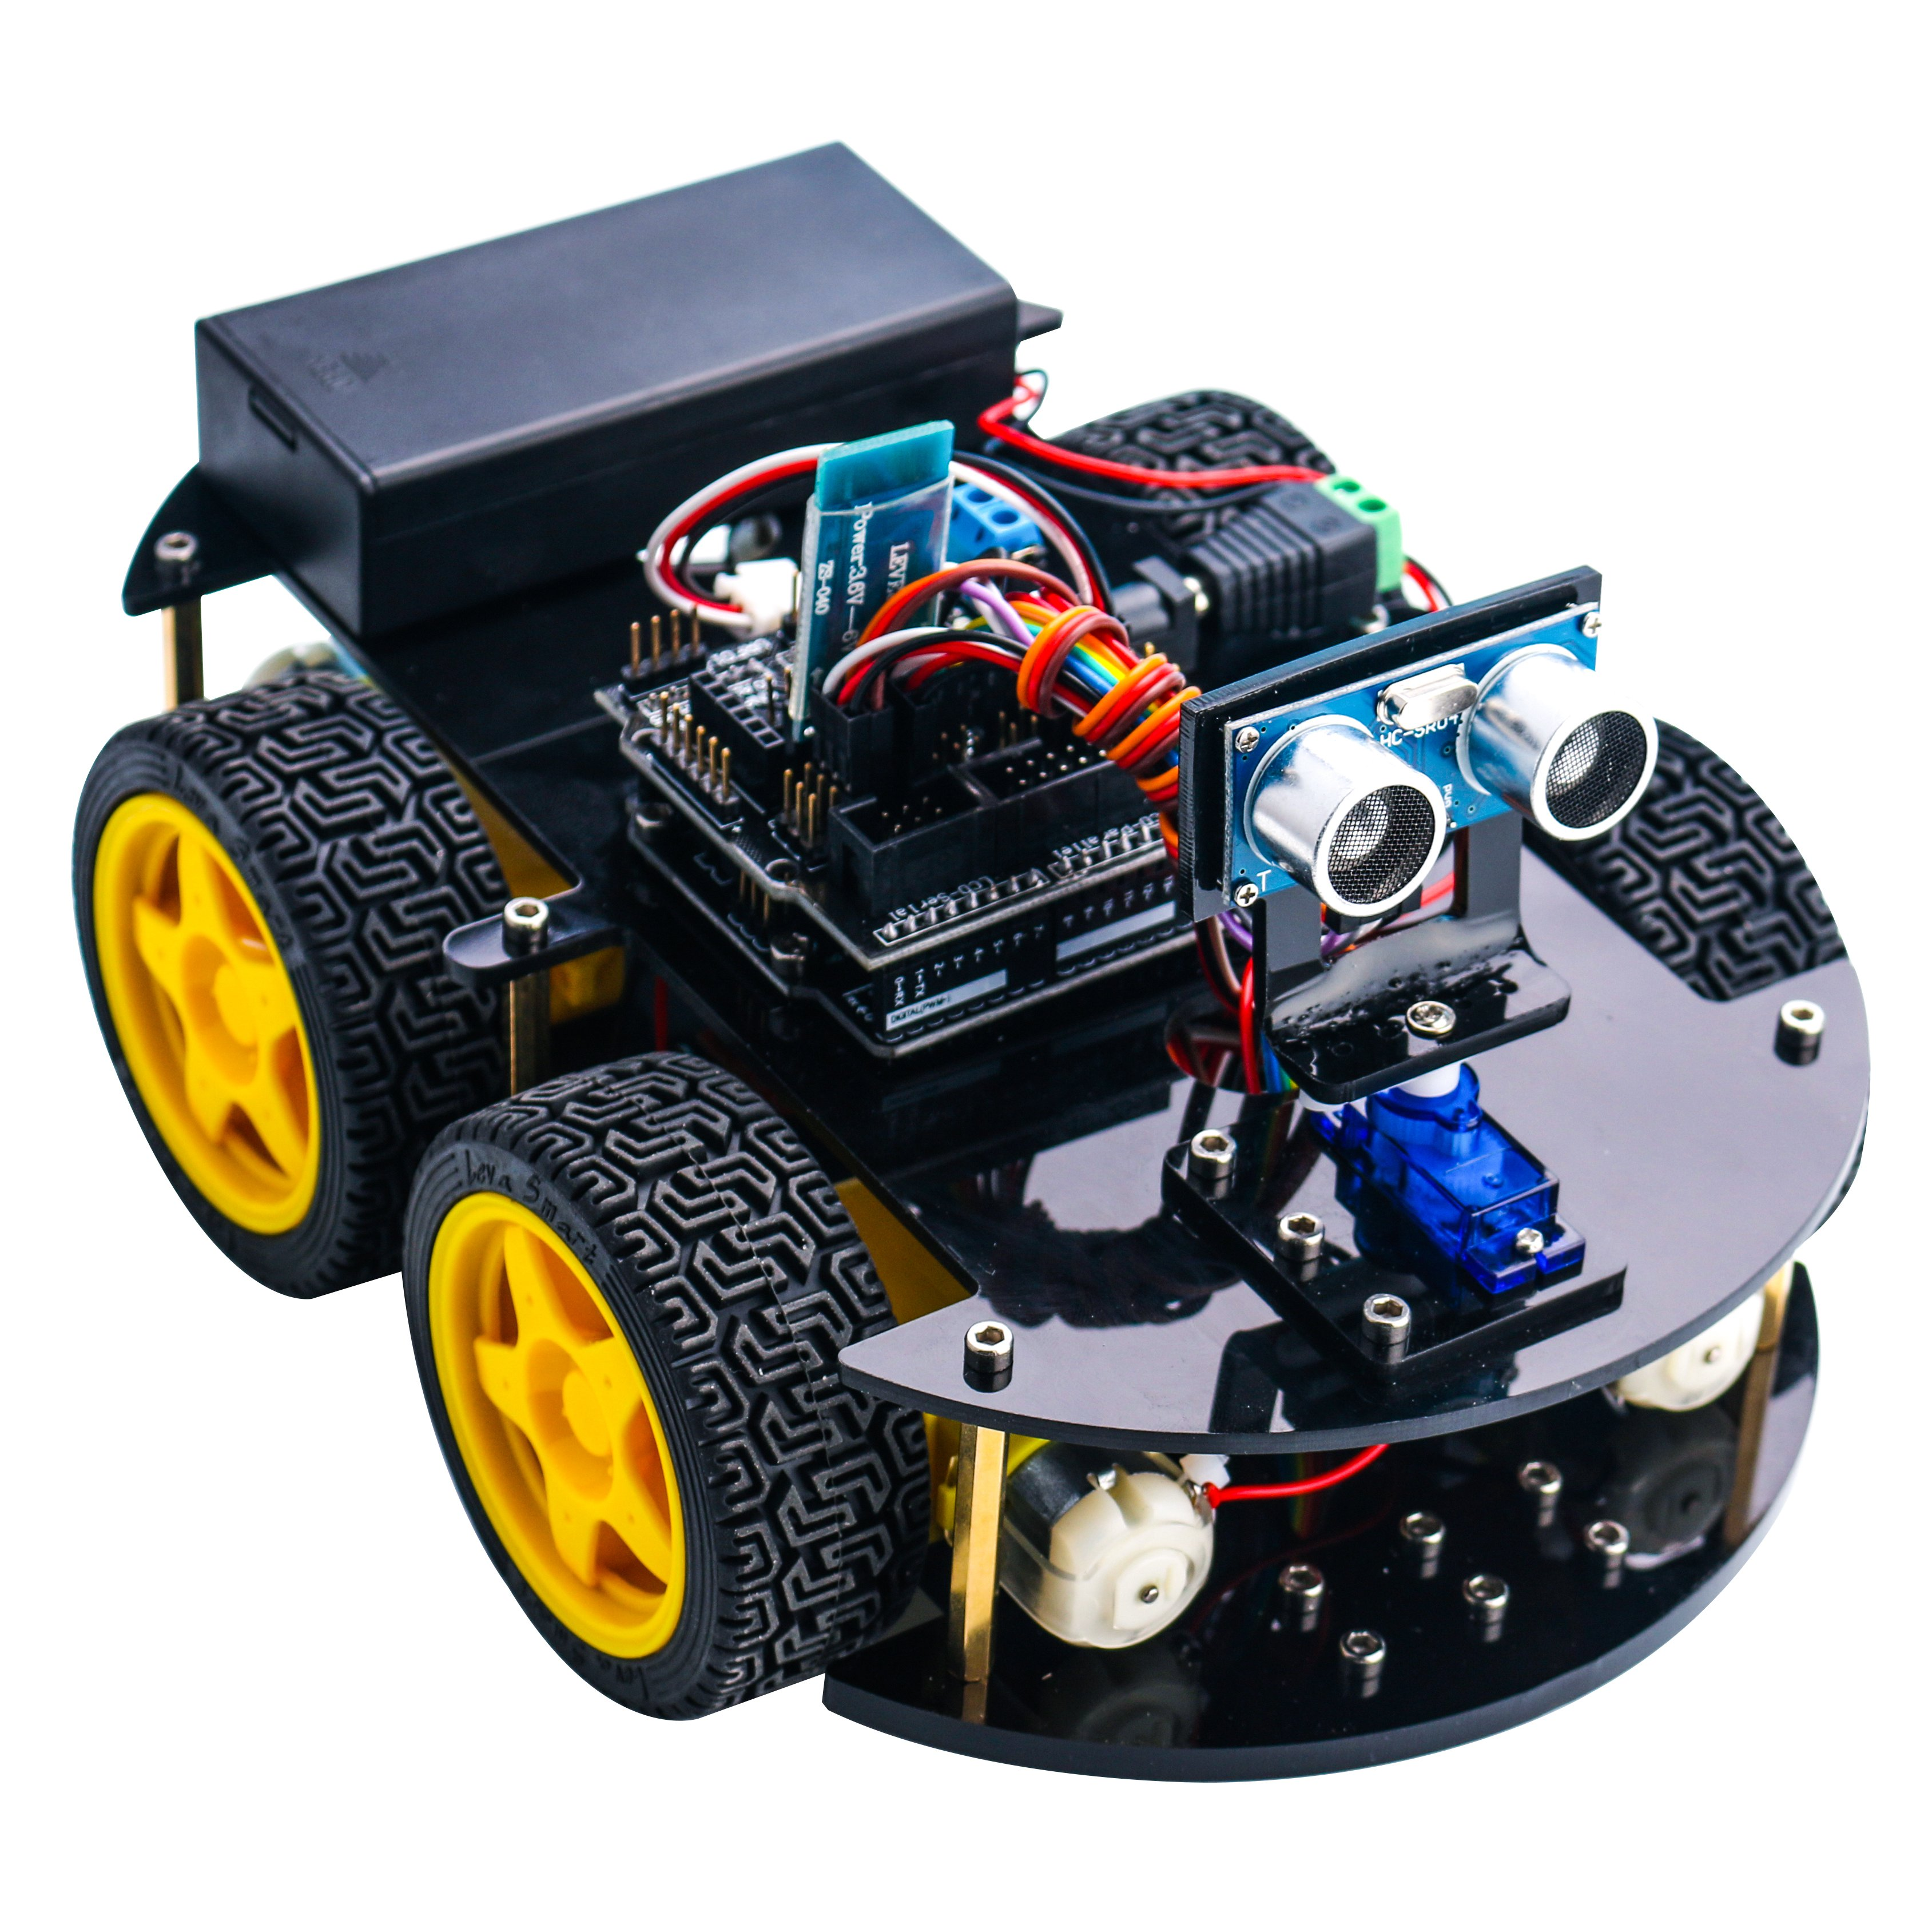 24 1 Elegoo Arduino Project Smart Robot Car Kit Four Wheel Drives on camera circuit board diagram